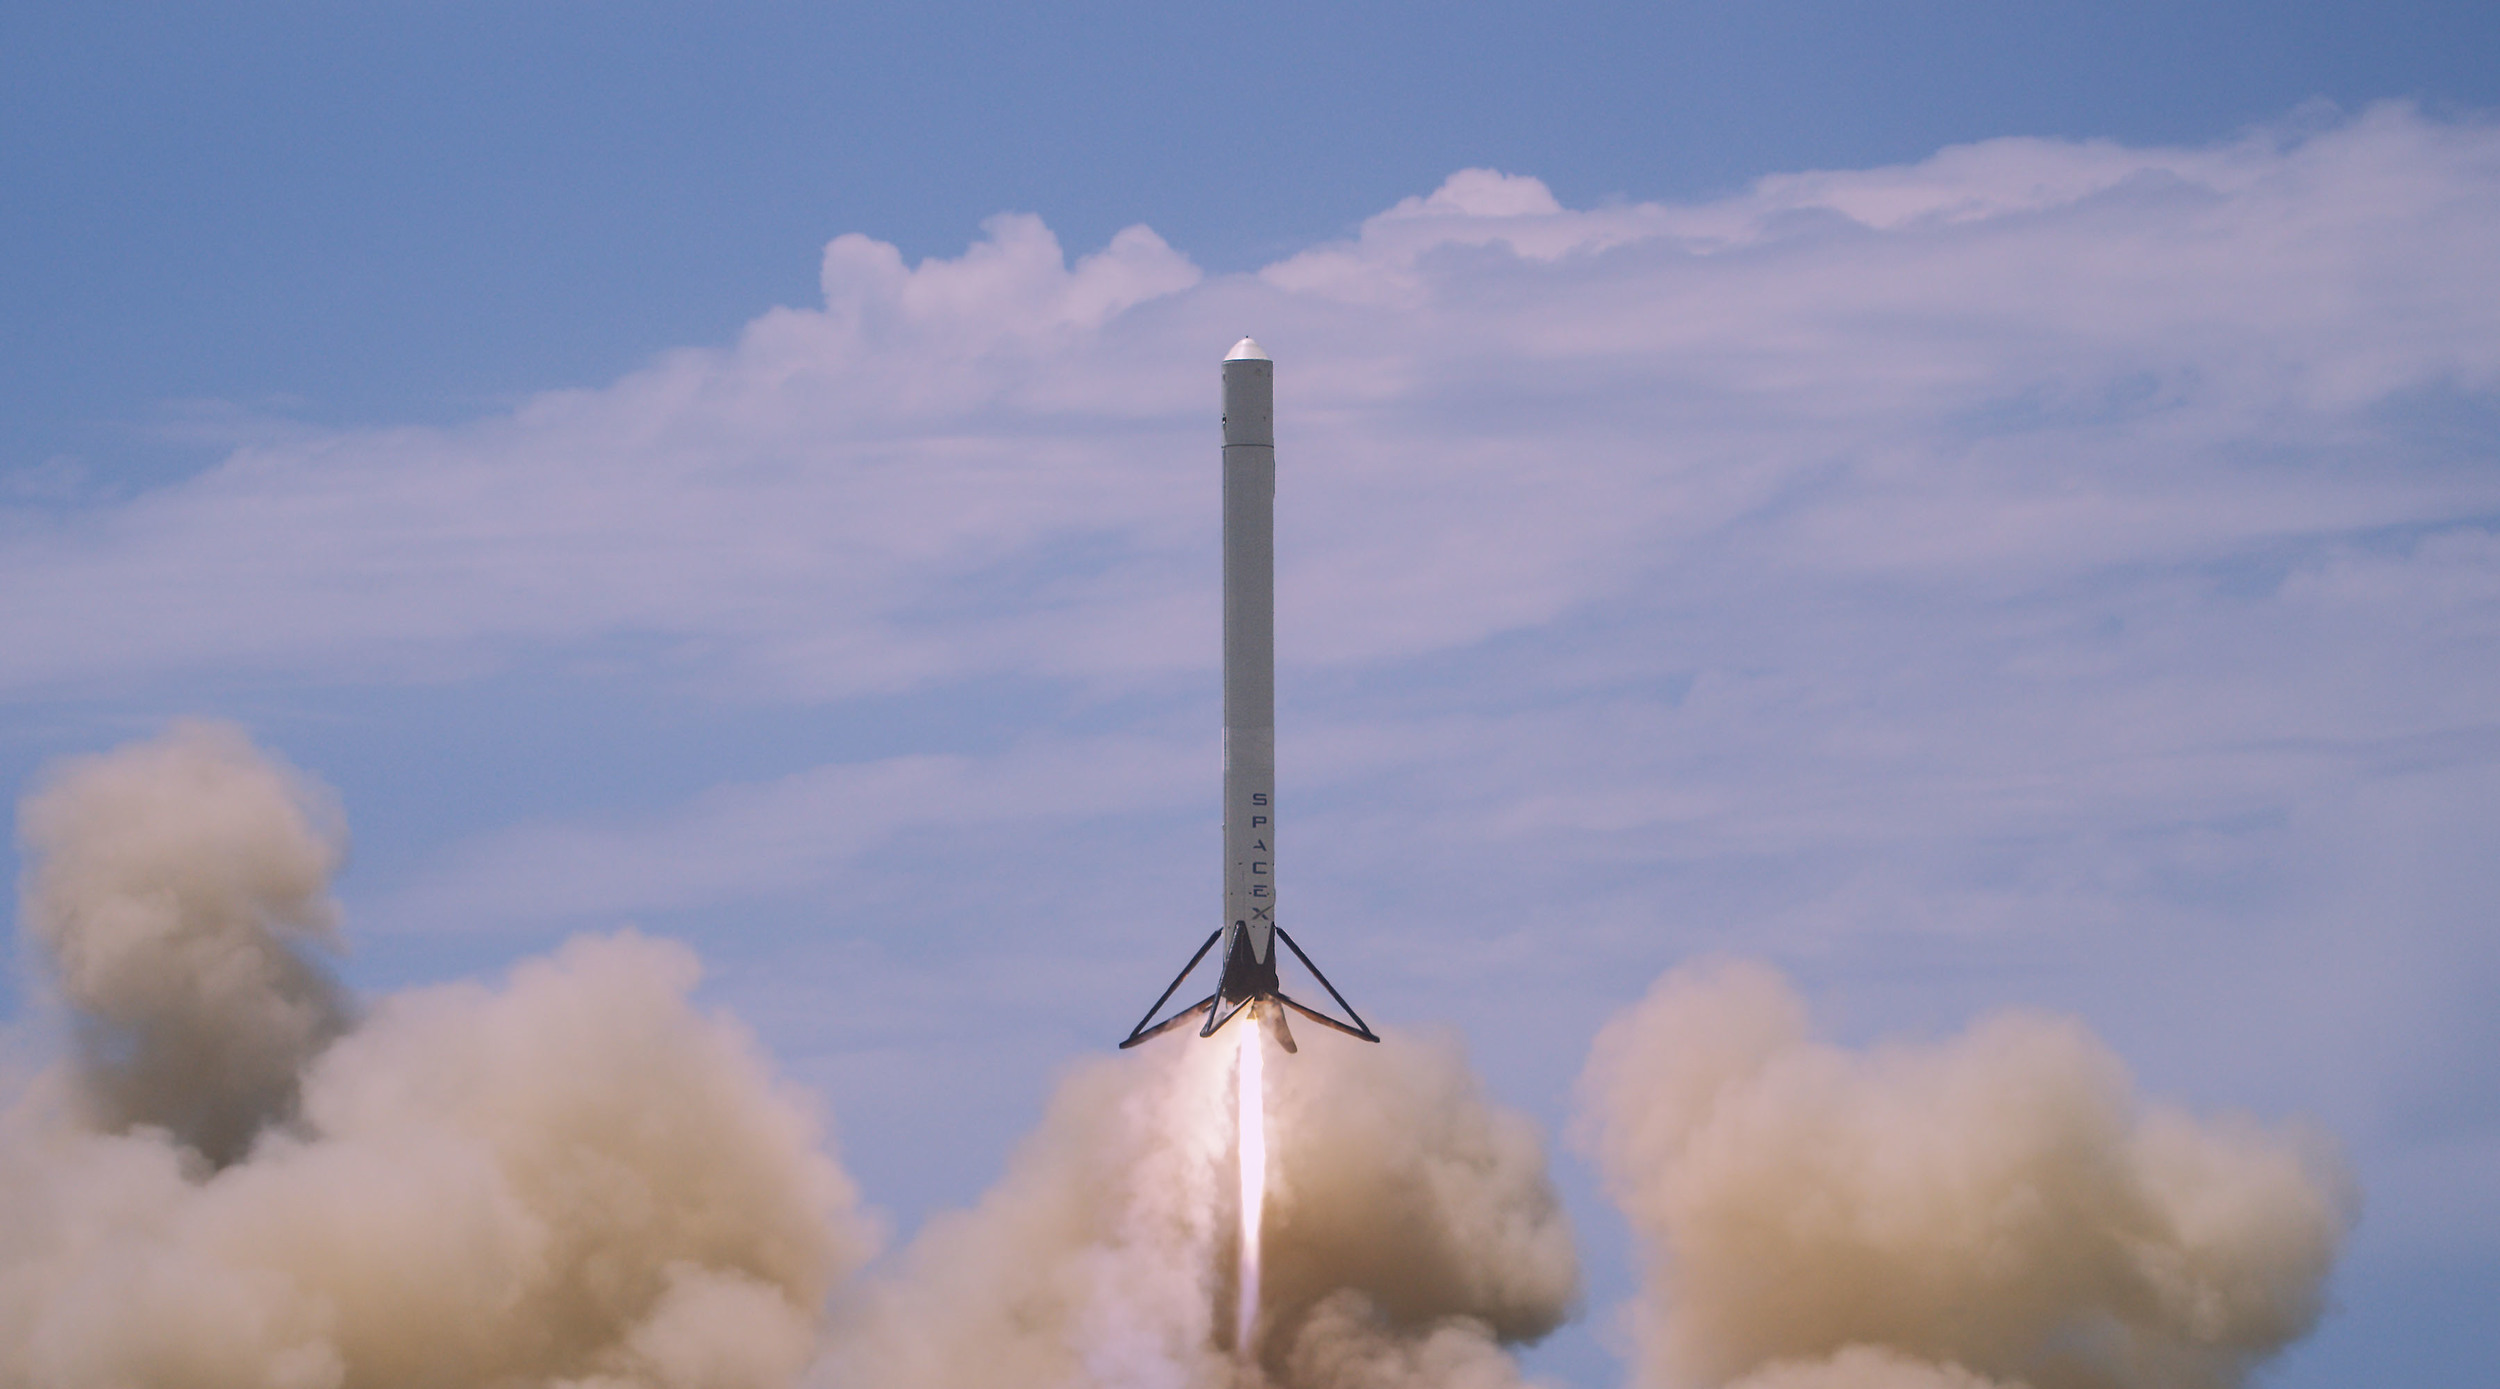 SpaceX testing the reusable rocket stage in Texas. Image Credit: SpaceX